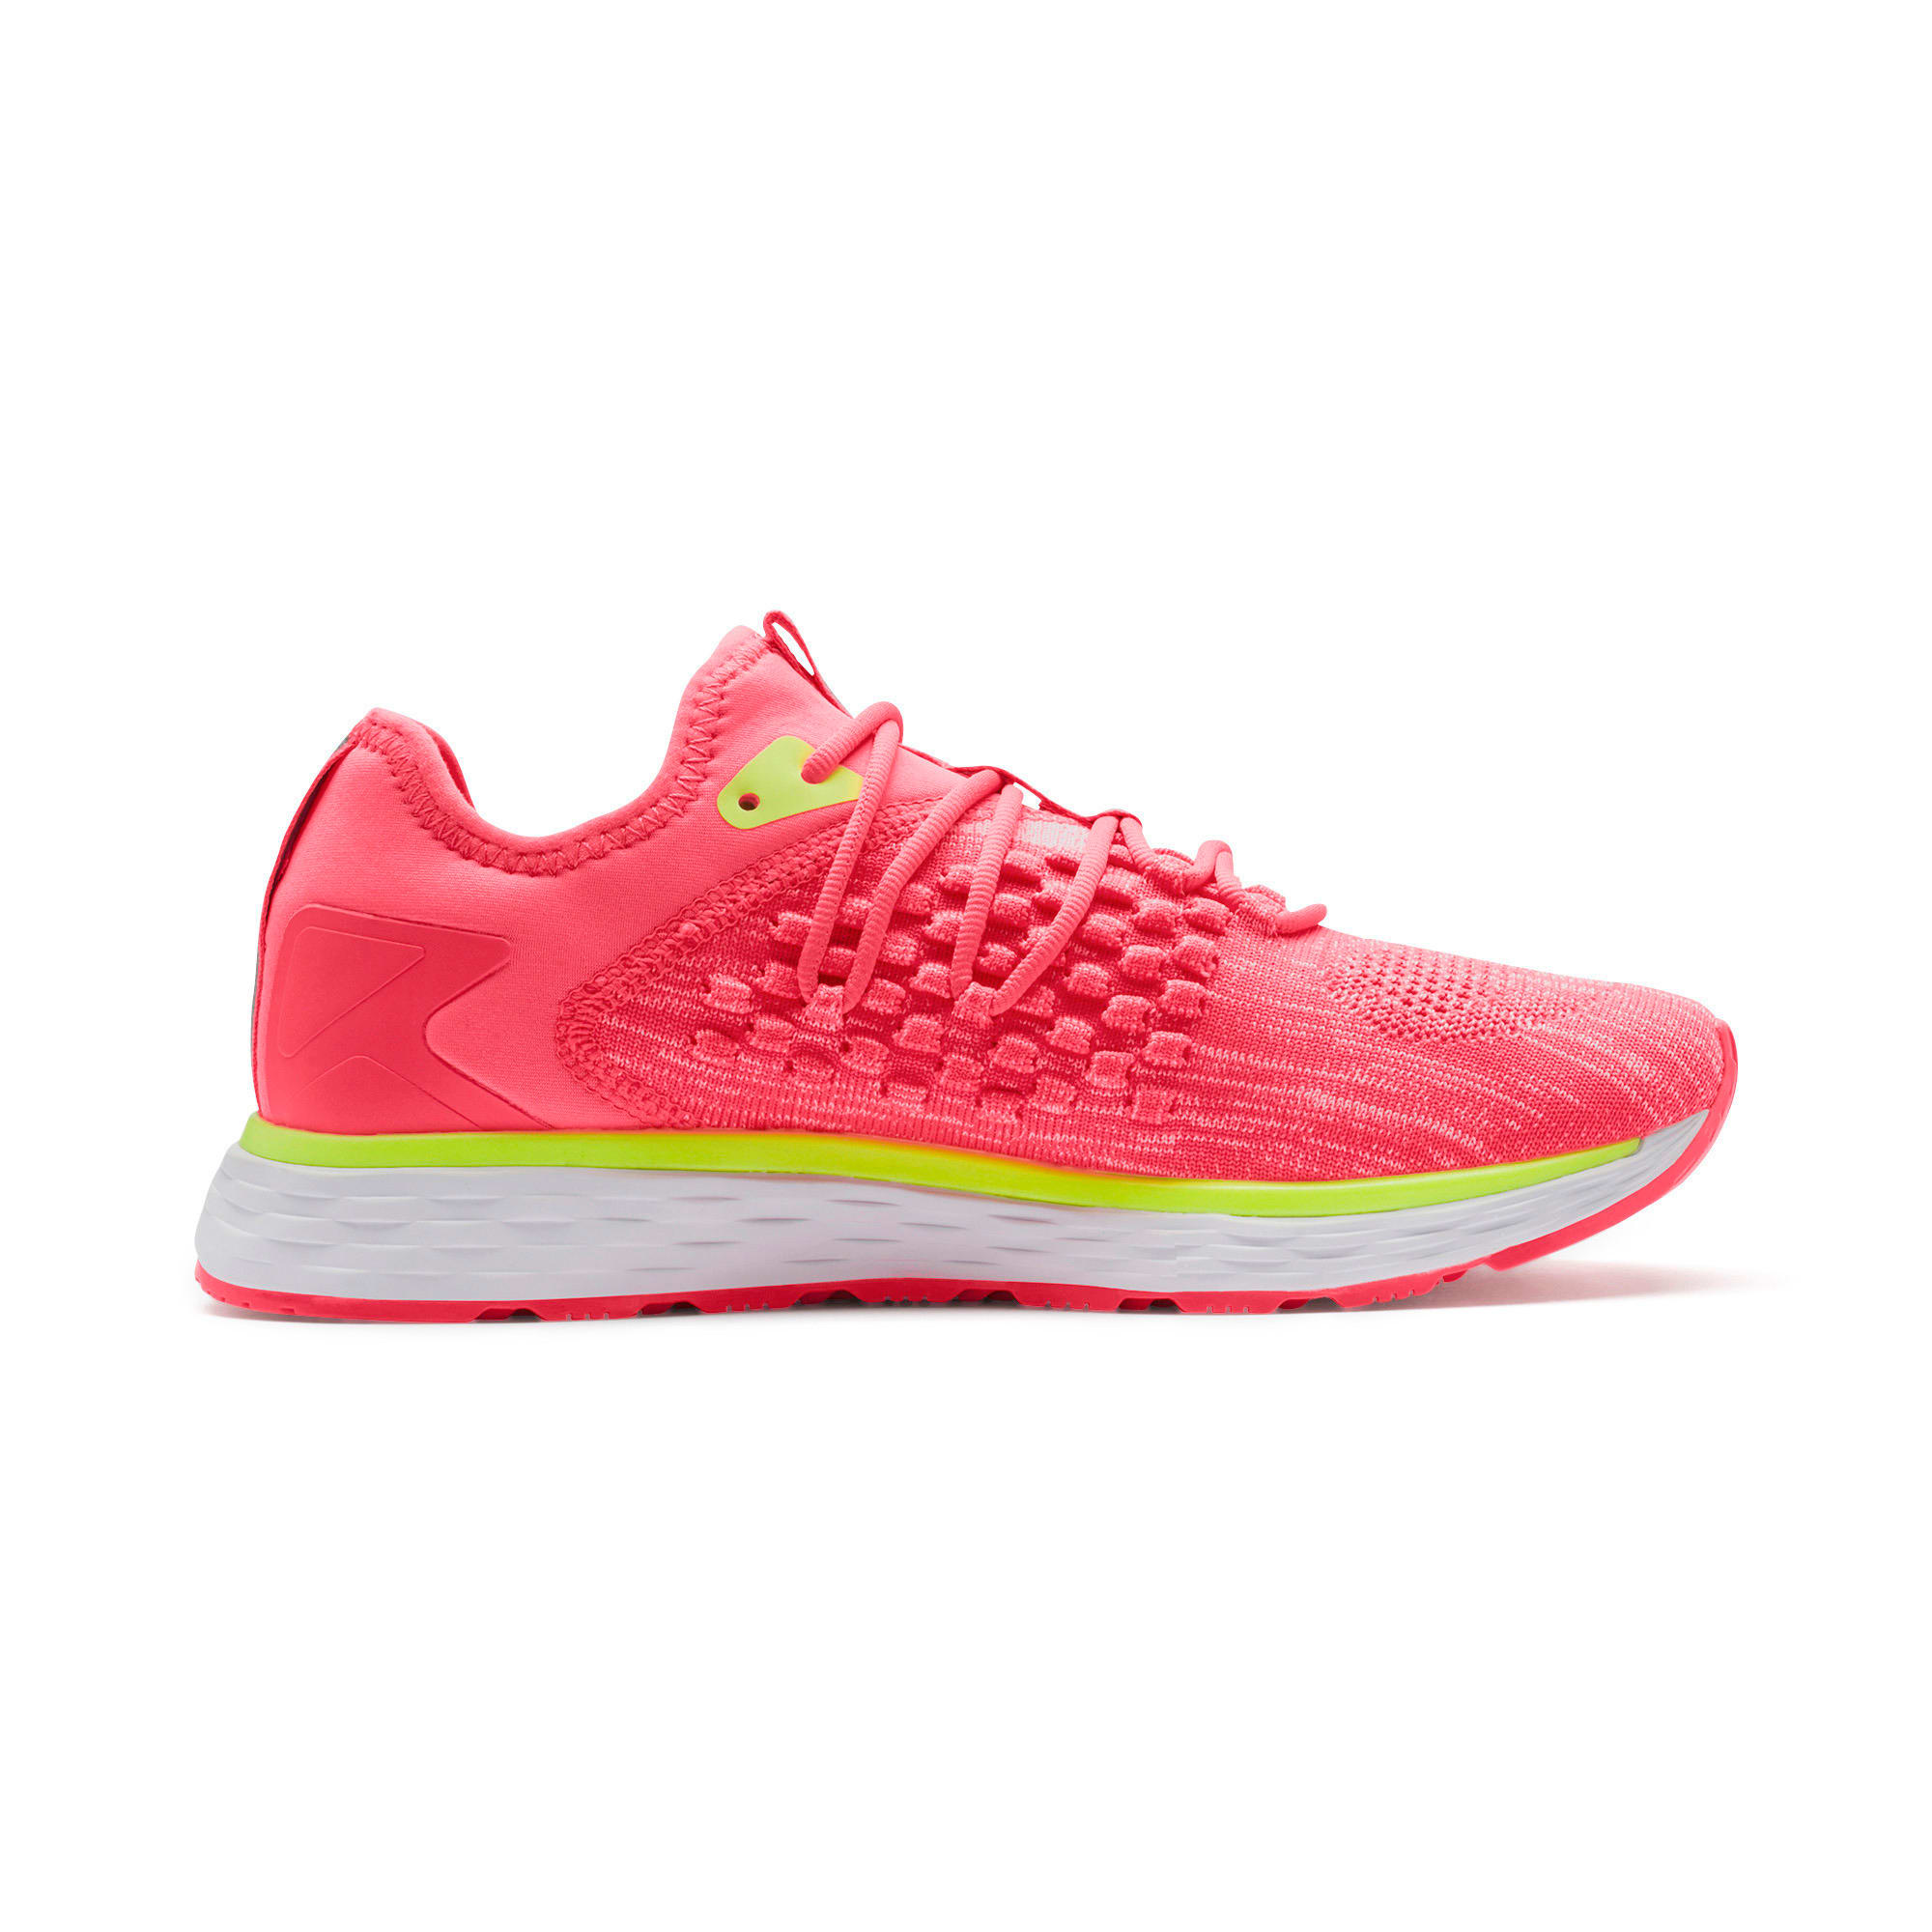 Thumbnail 6 of SPEED 600 FUSEFIT Women's Running Shoes, Pink Alert-Puma White, medium